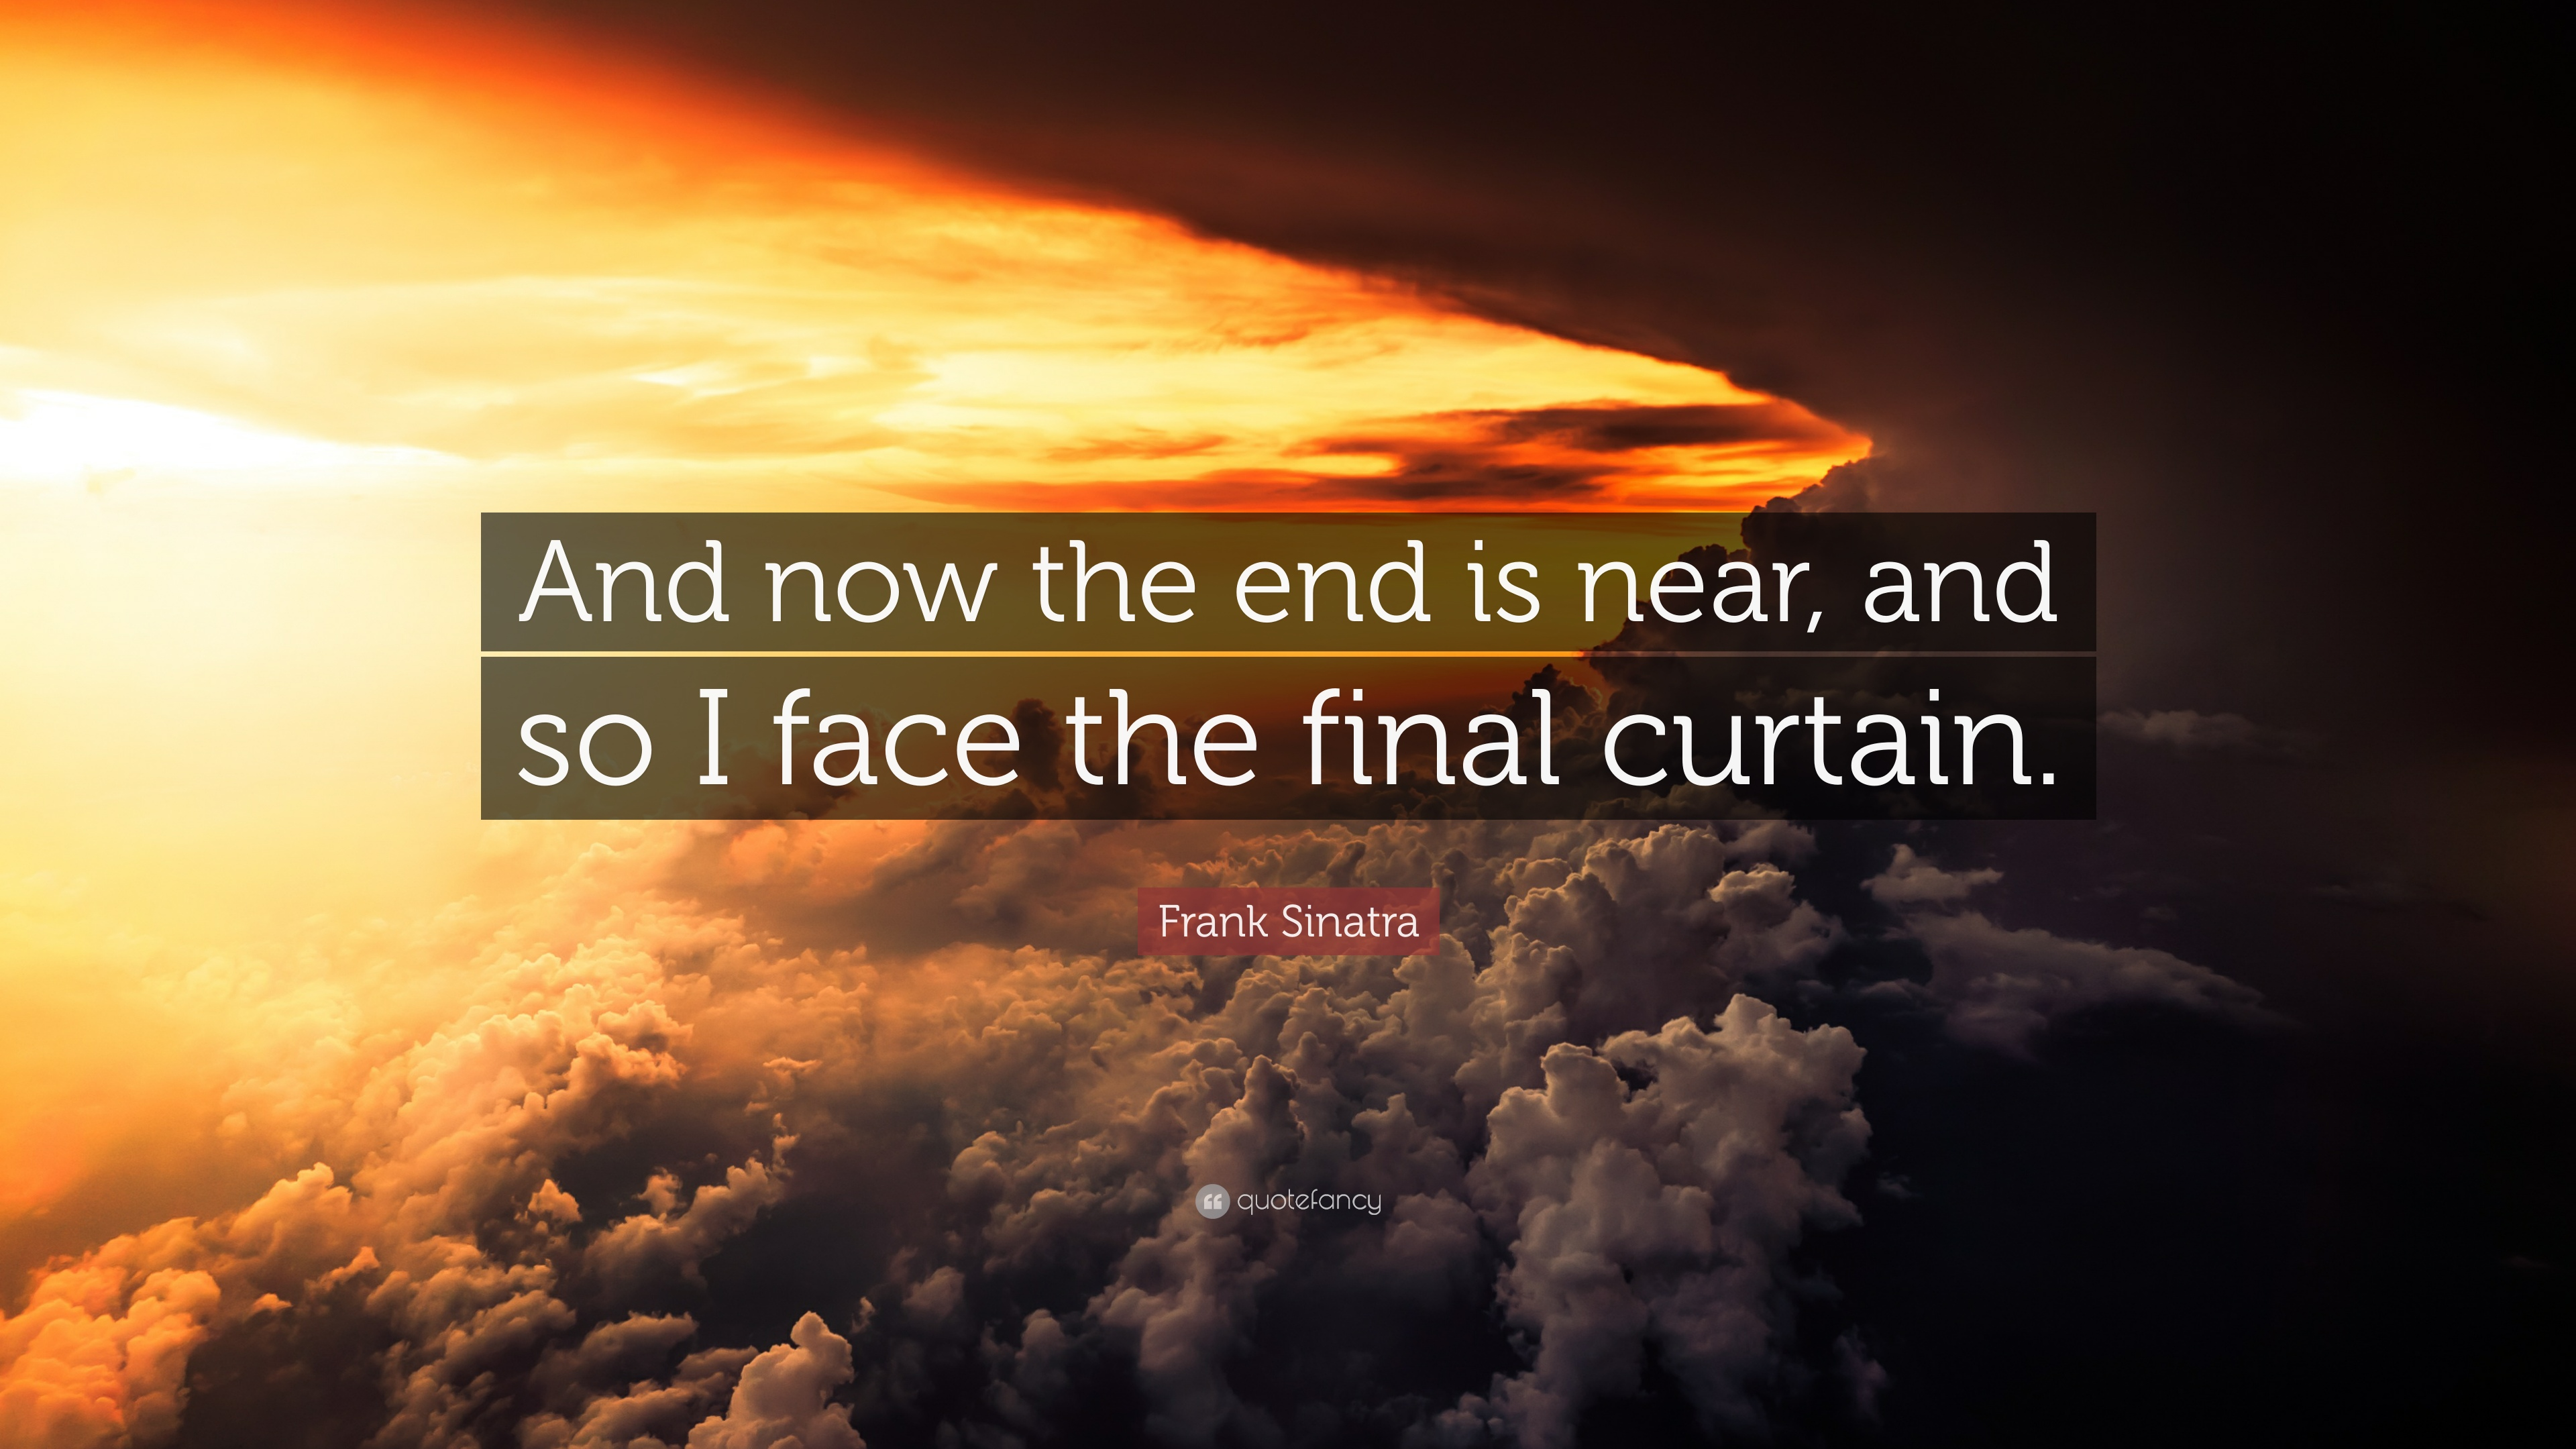 Frank Sinatra Quote And Now The End Is Near And So I Face The